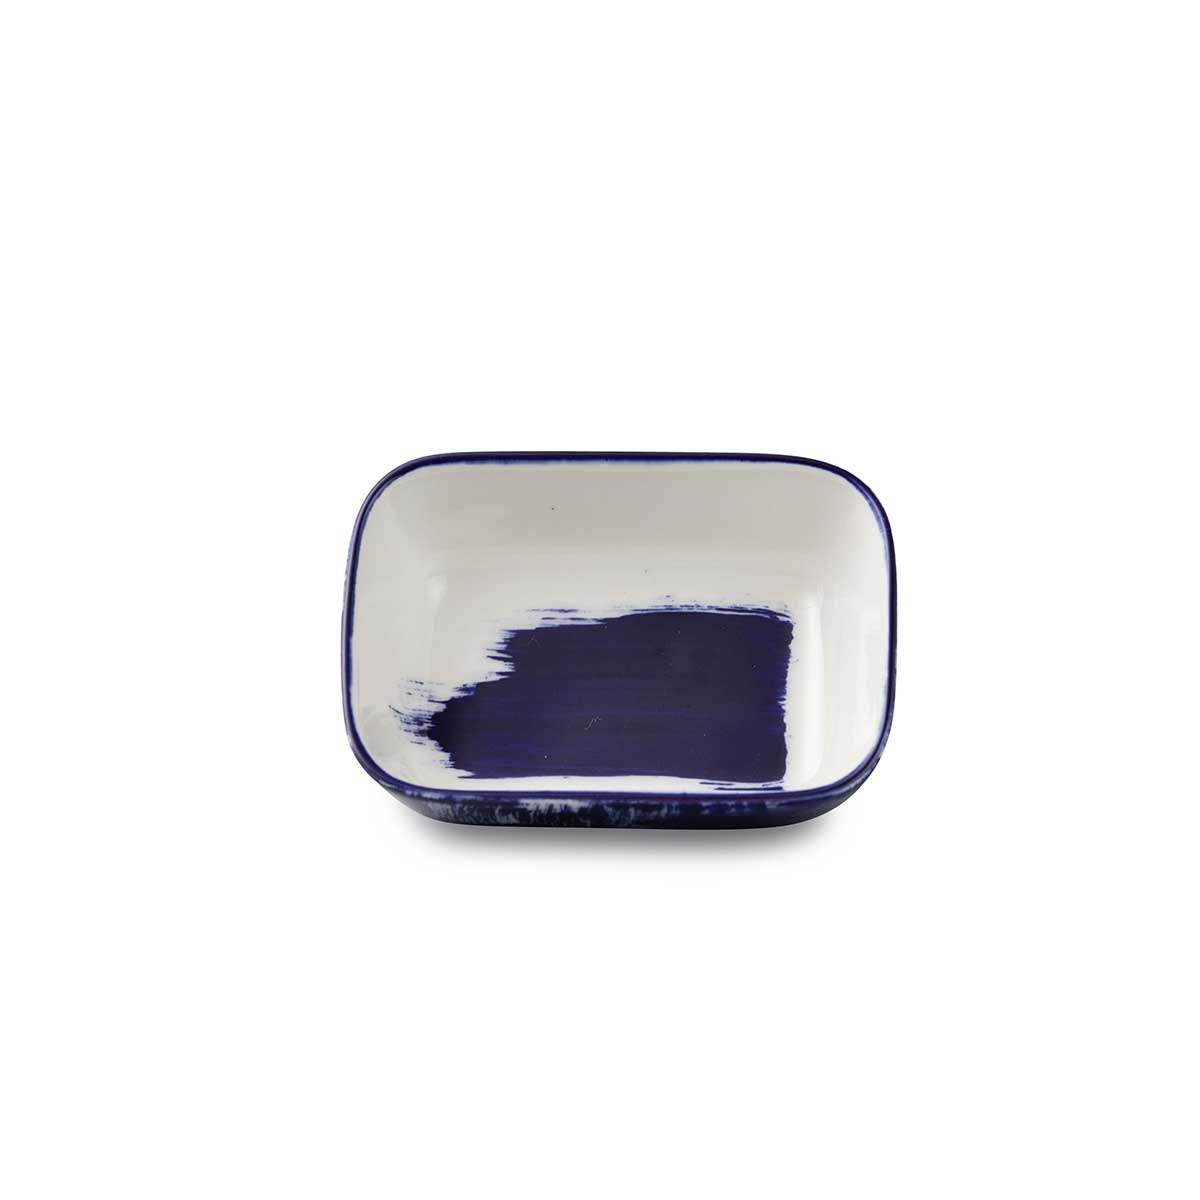 Hado & Hoki Small Rectangular Serving Dish